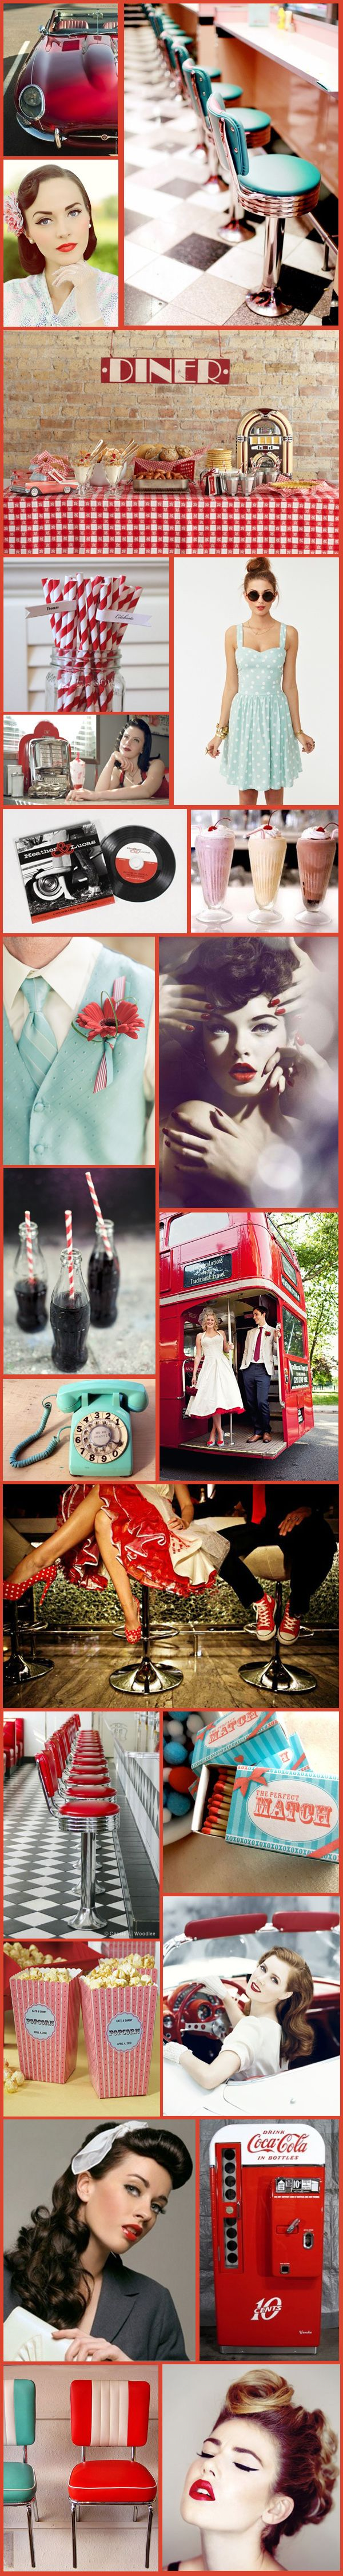 Wednesday Wedding Inspiration: Fun 50′s Retro Theme!